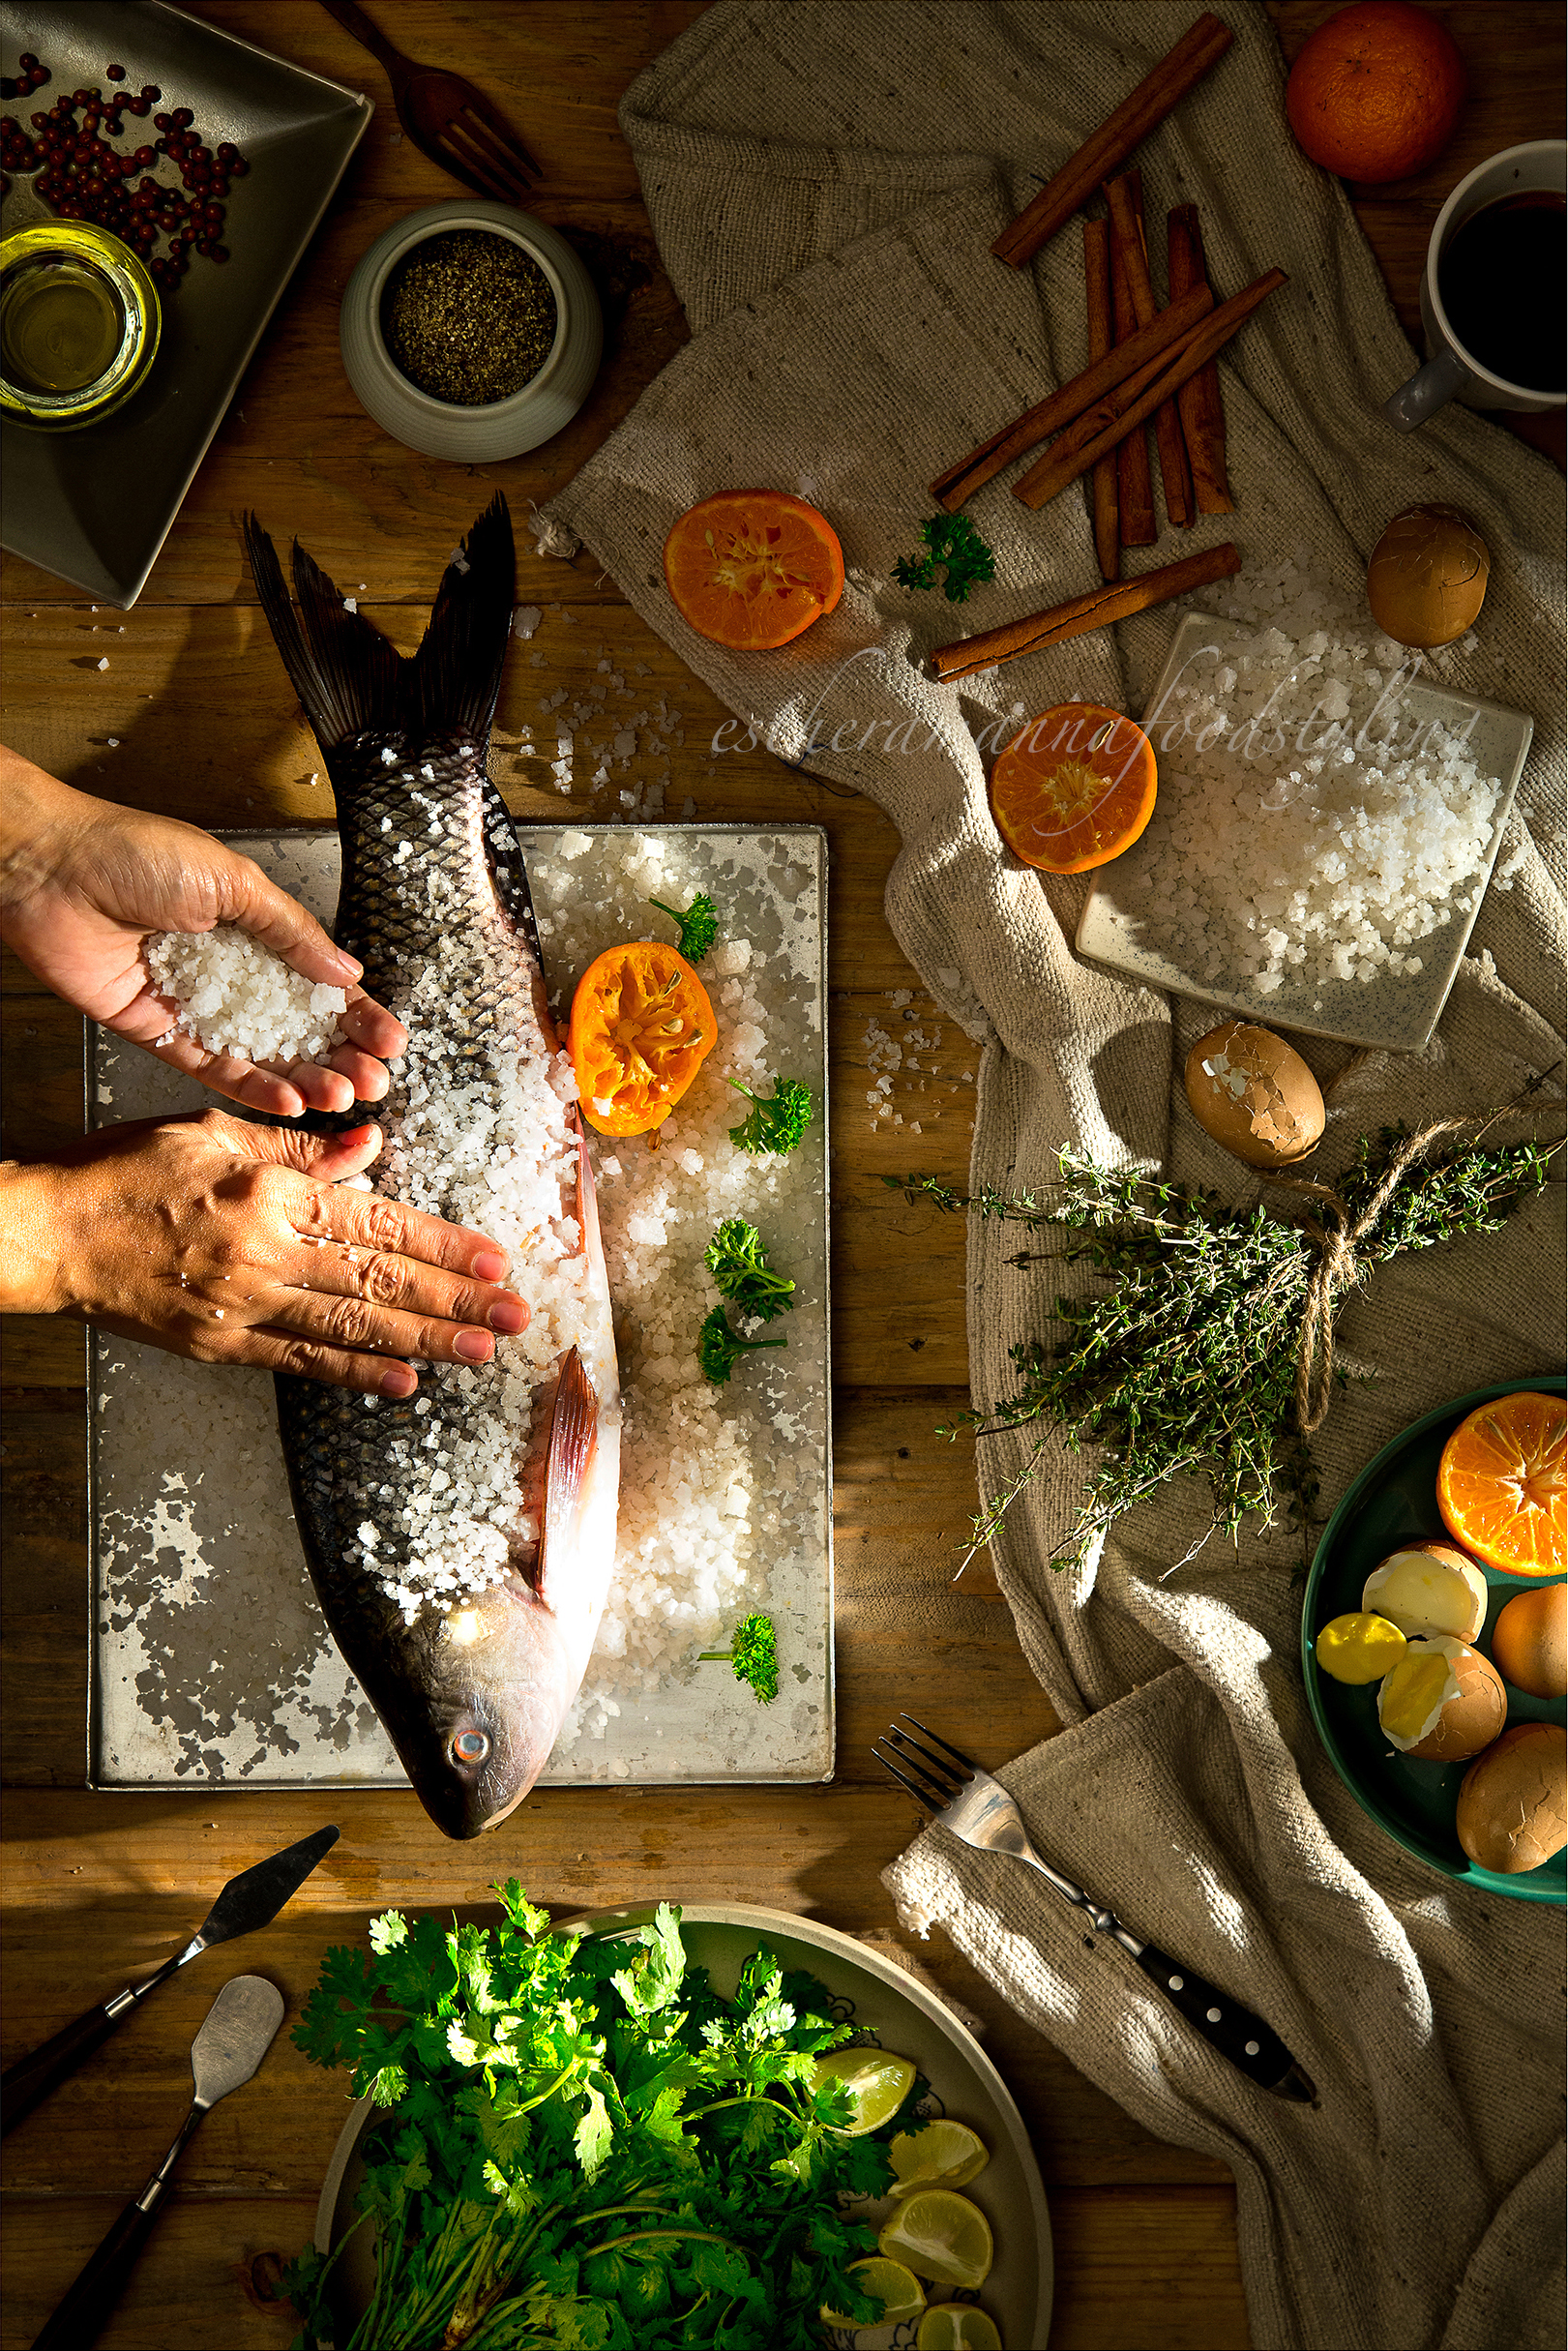 A lifestyle image with fish being prepared for supper.Hands play an integral part in Food.